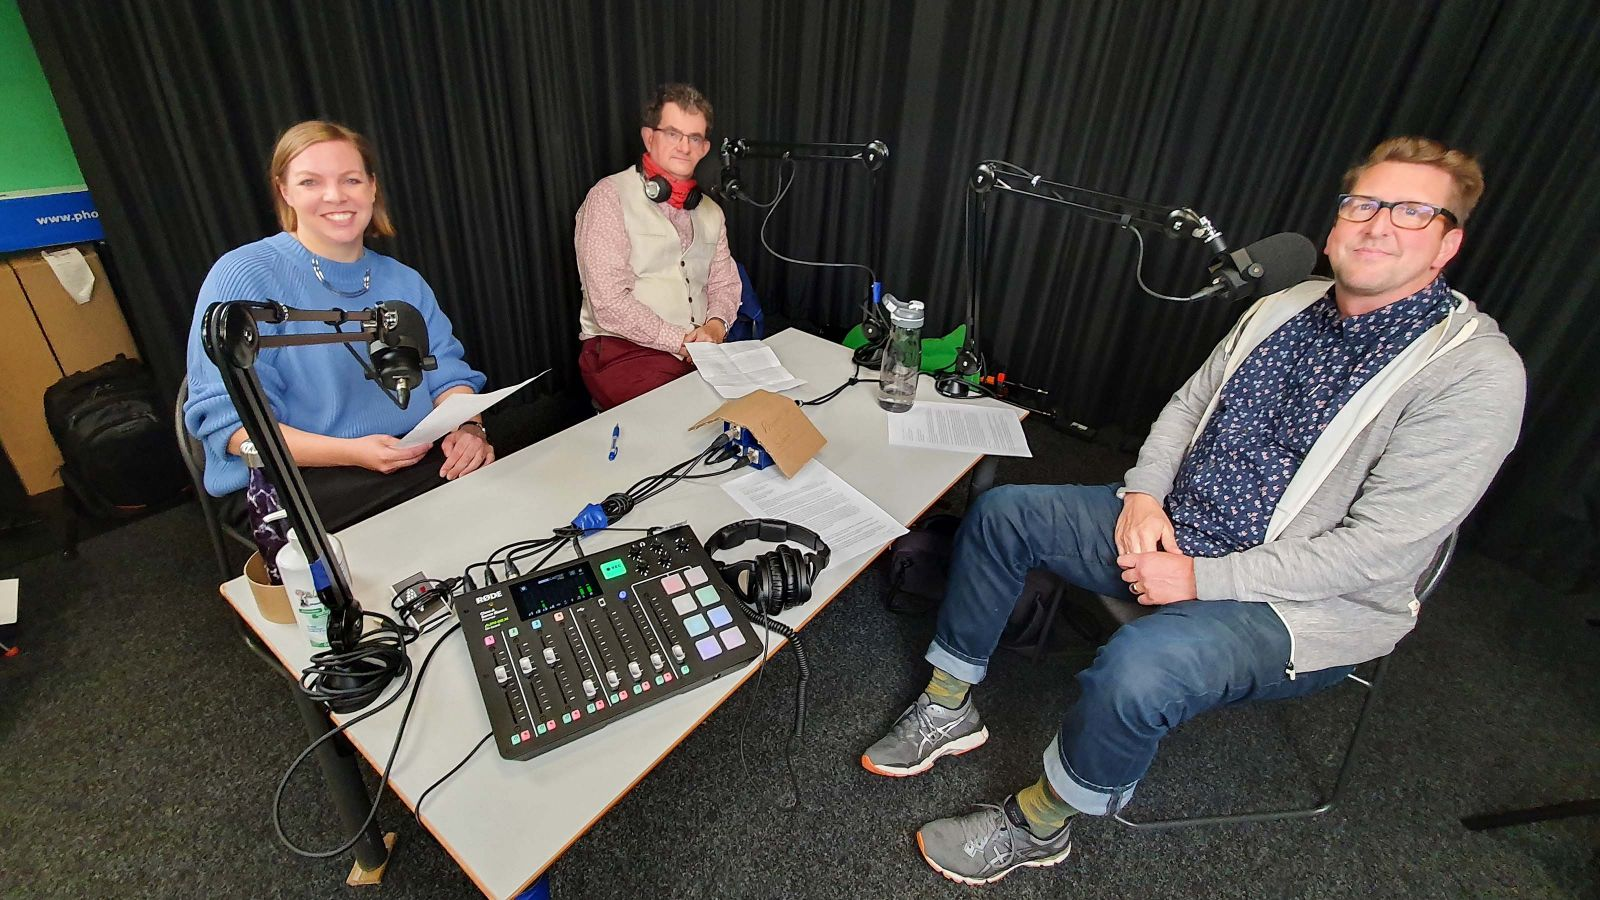 Dr Ina Reichenberger, Assosciate Professor Ian Yeoman, and Associate Professor Christian Schott at the recording session for the podcast